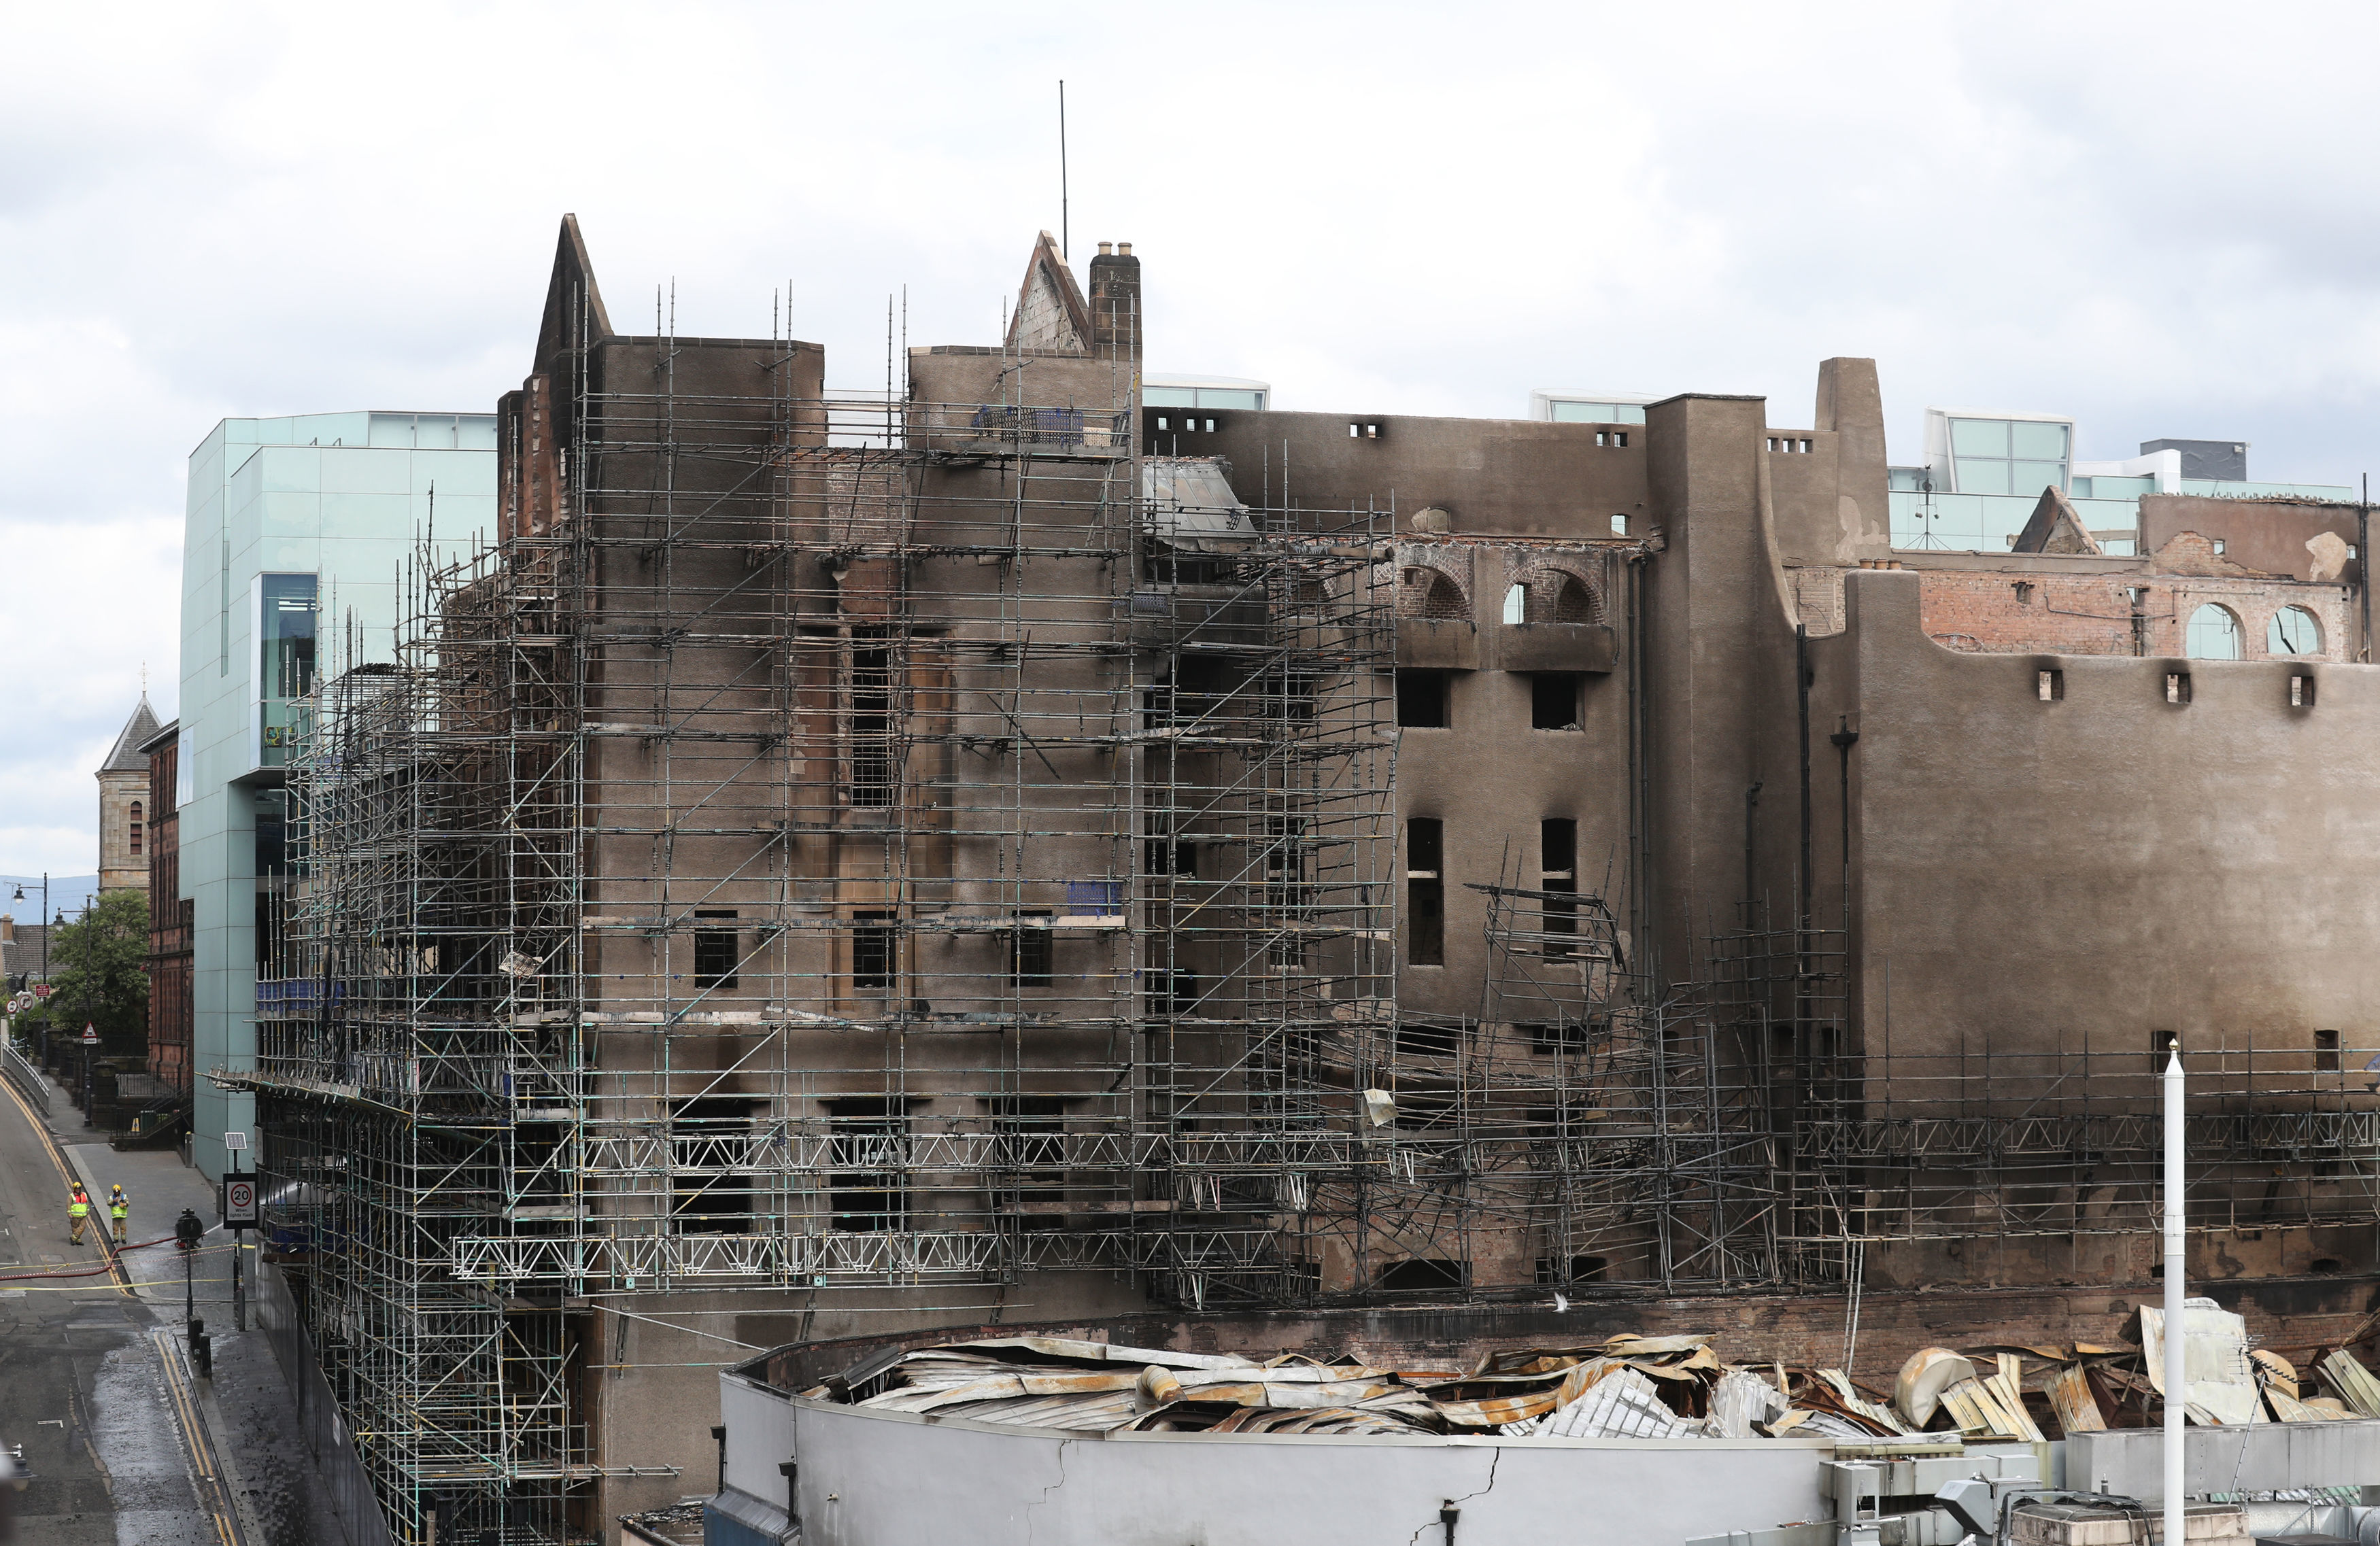 The art school lies devastated after the second blaze.